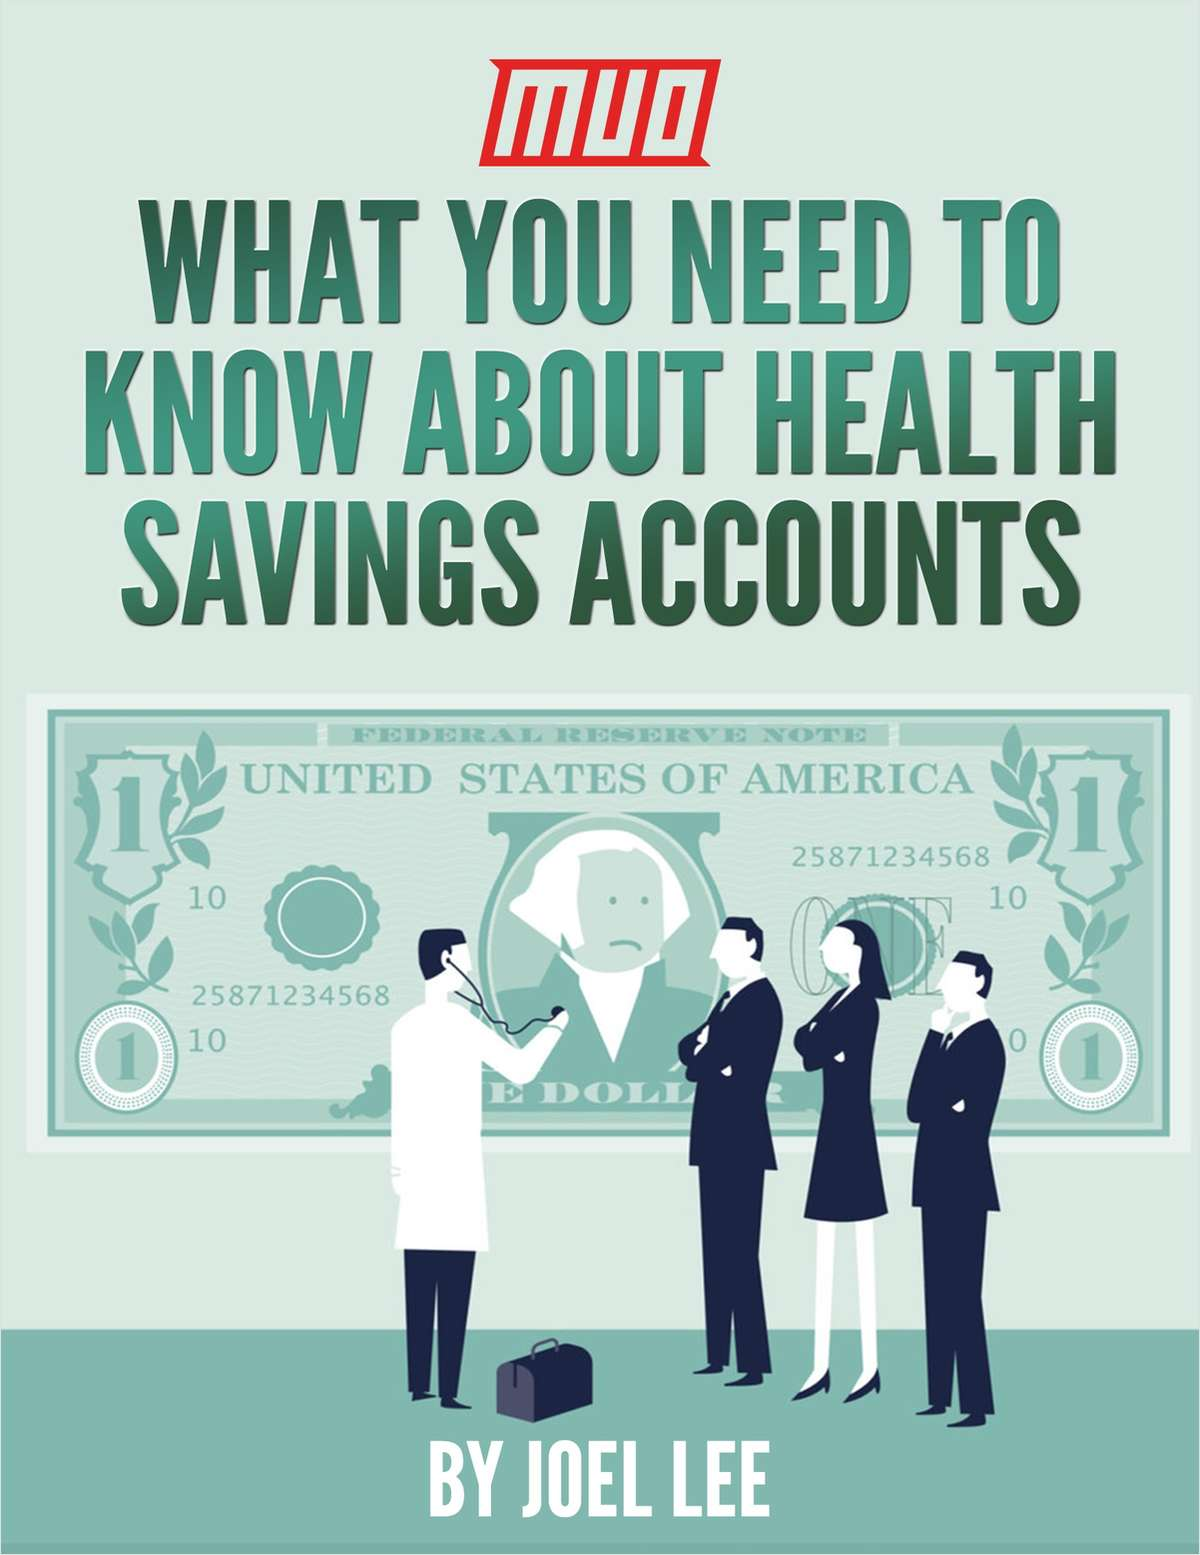 What You Need to Know About Health Savings Accounts